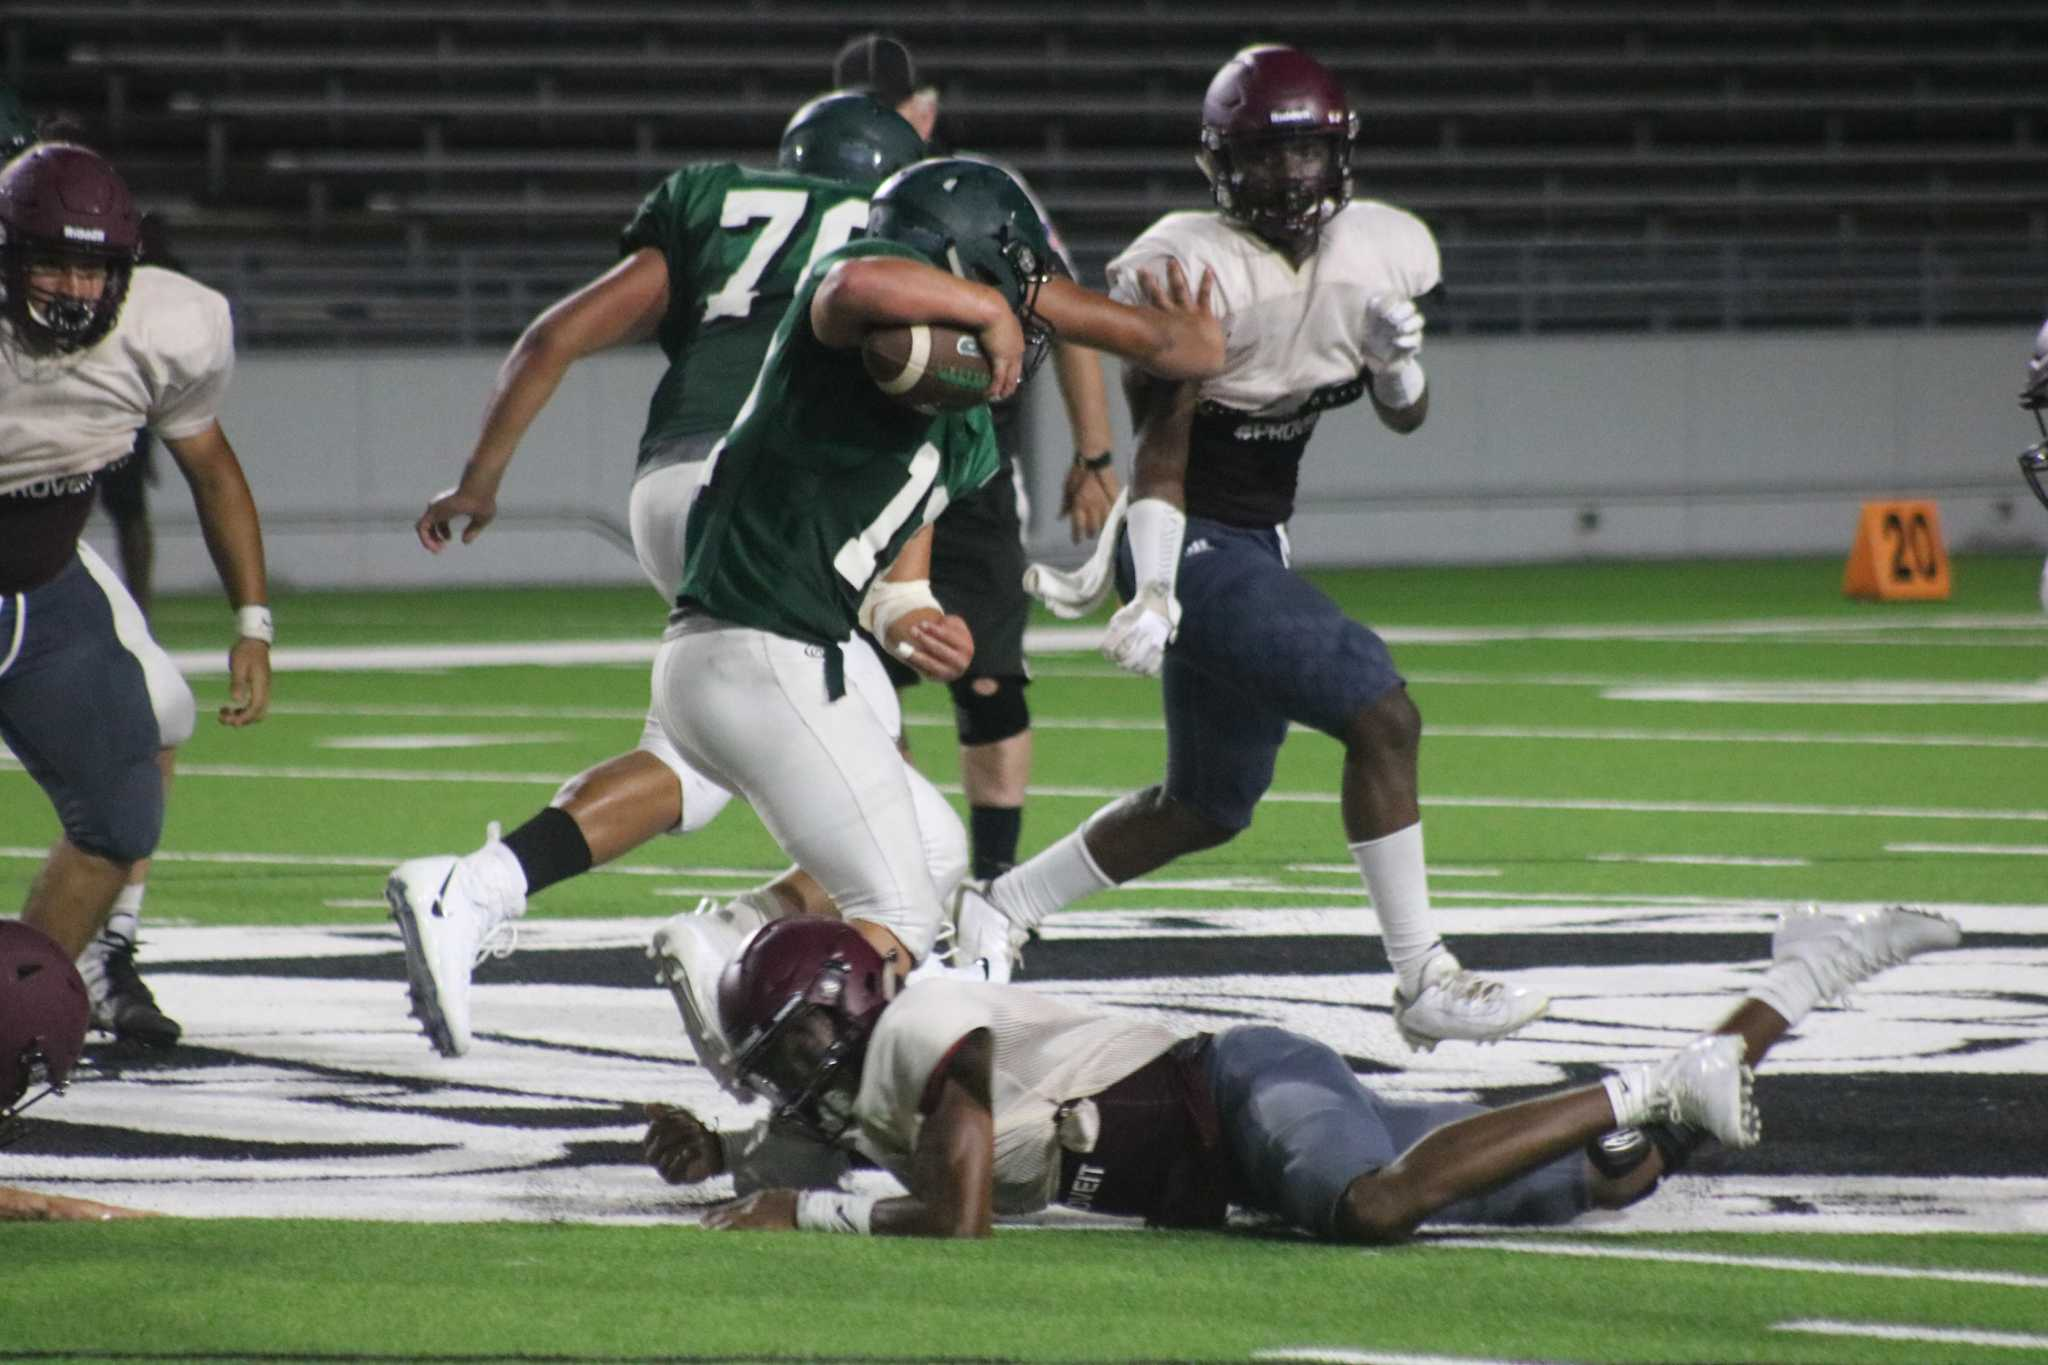 Lee's quickness proves to be a problem for Pasadena in scrimmage